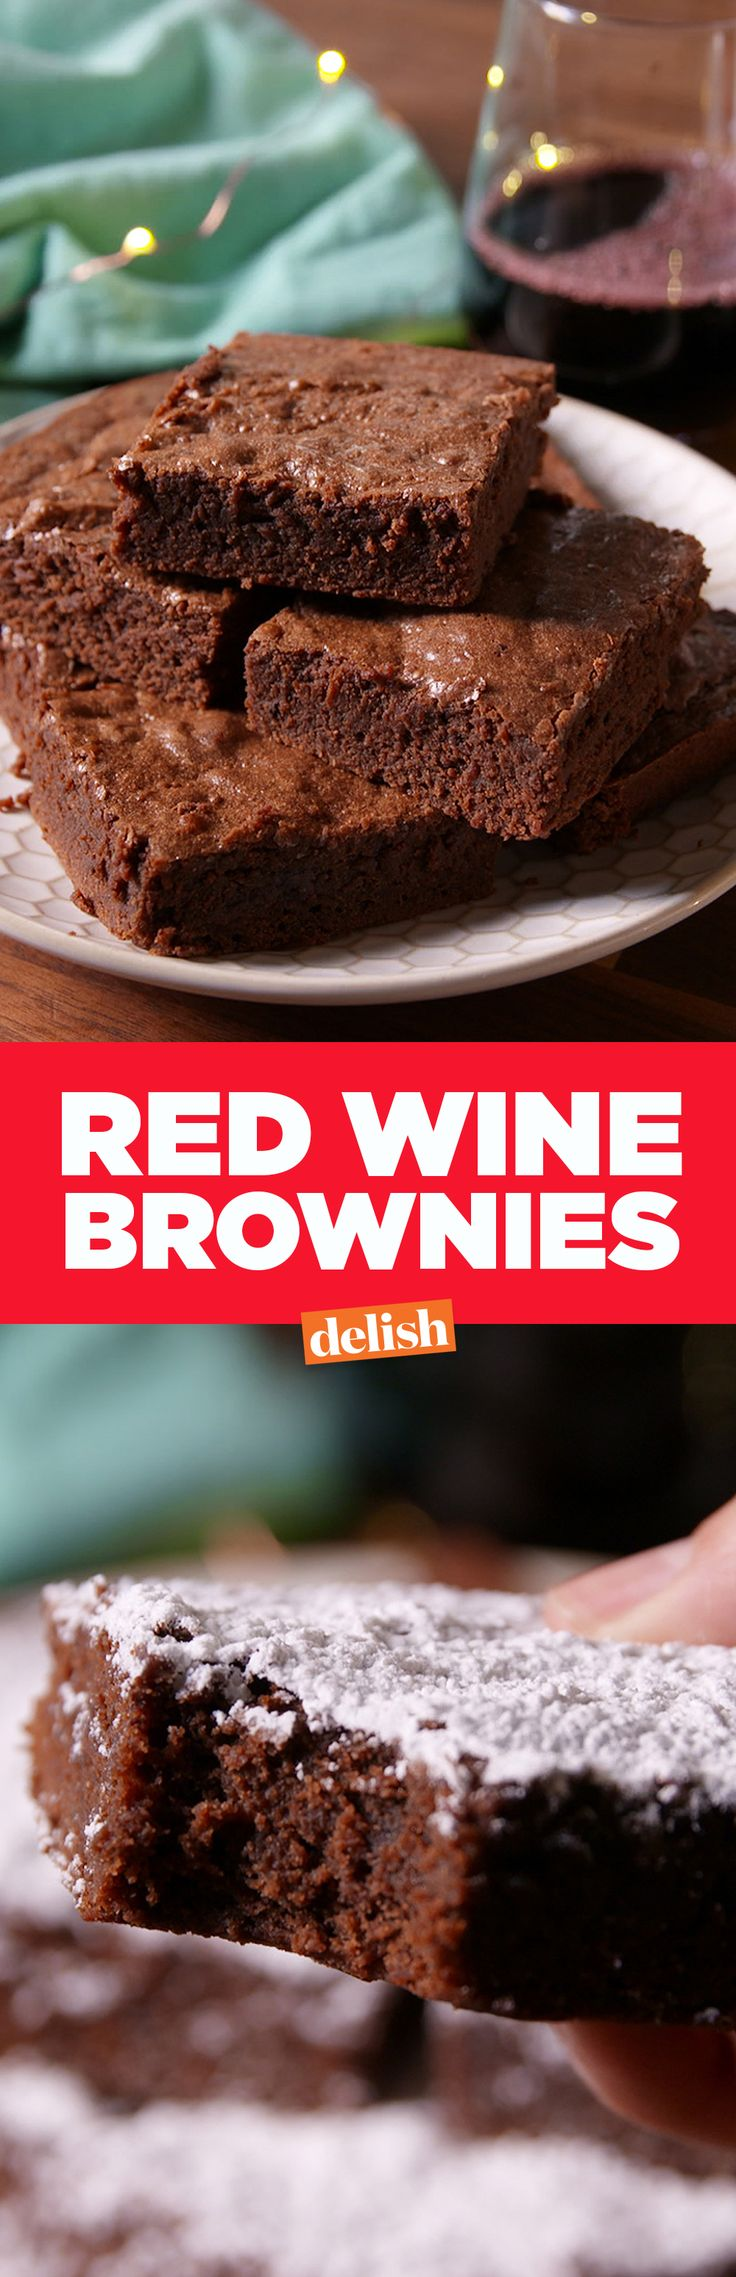 Best 25+ Best red wine ideas on Pinterest | Good red wine, Cheap ...